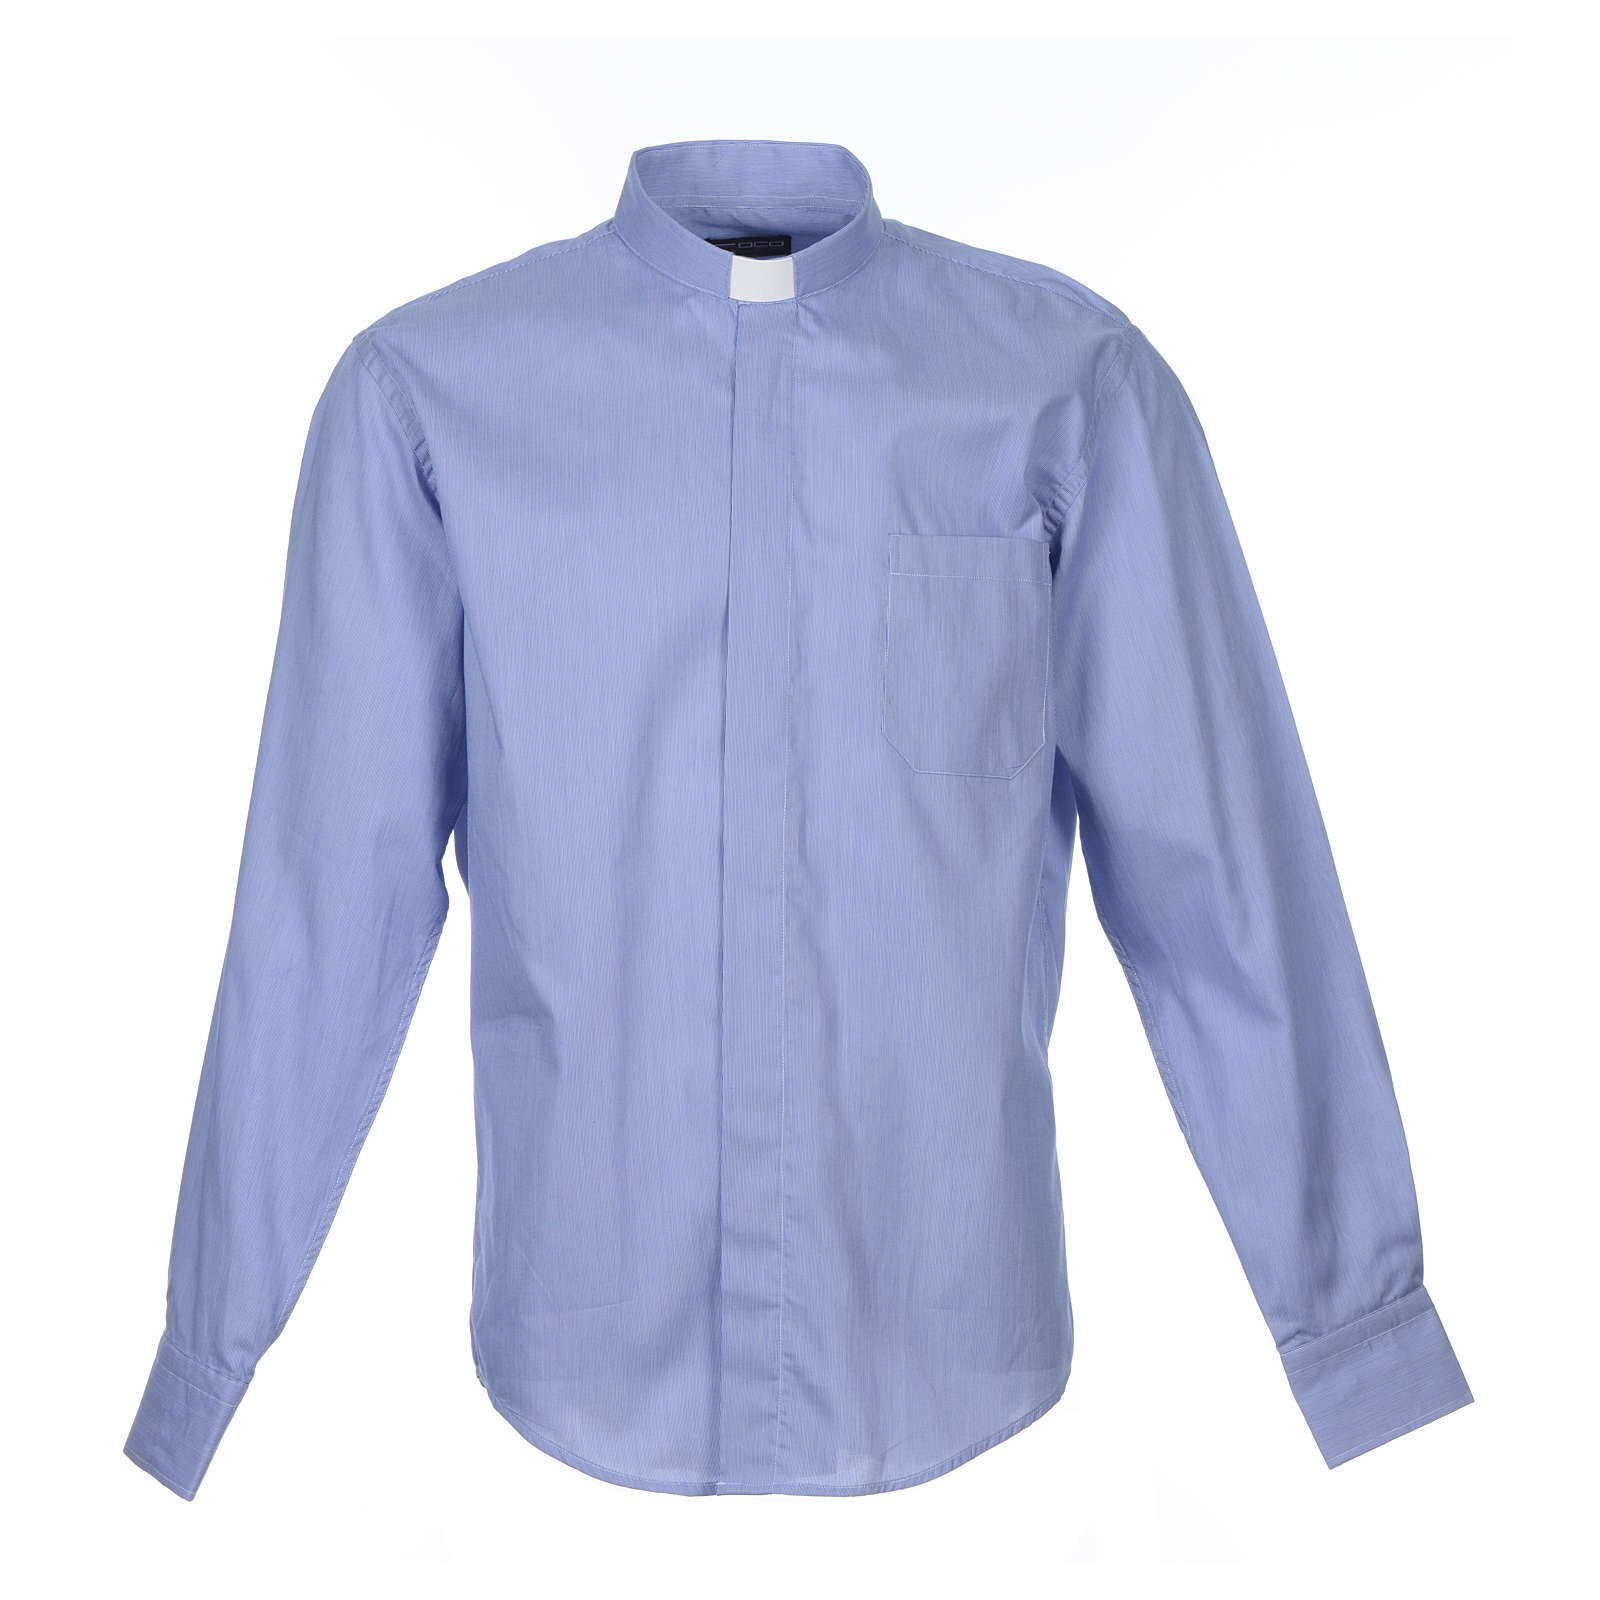 Clergy shirt long sleeves Prestige Line pure cotton Blue 4